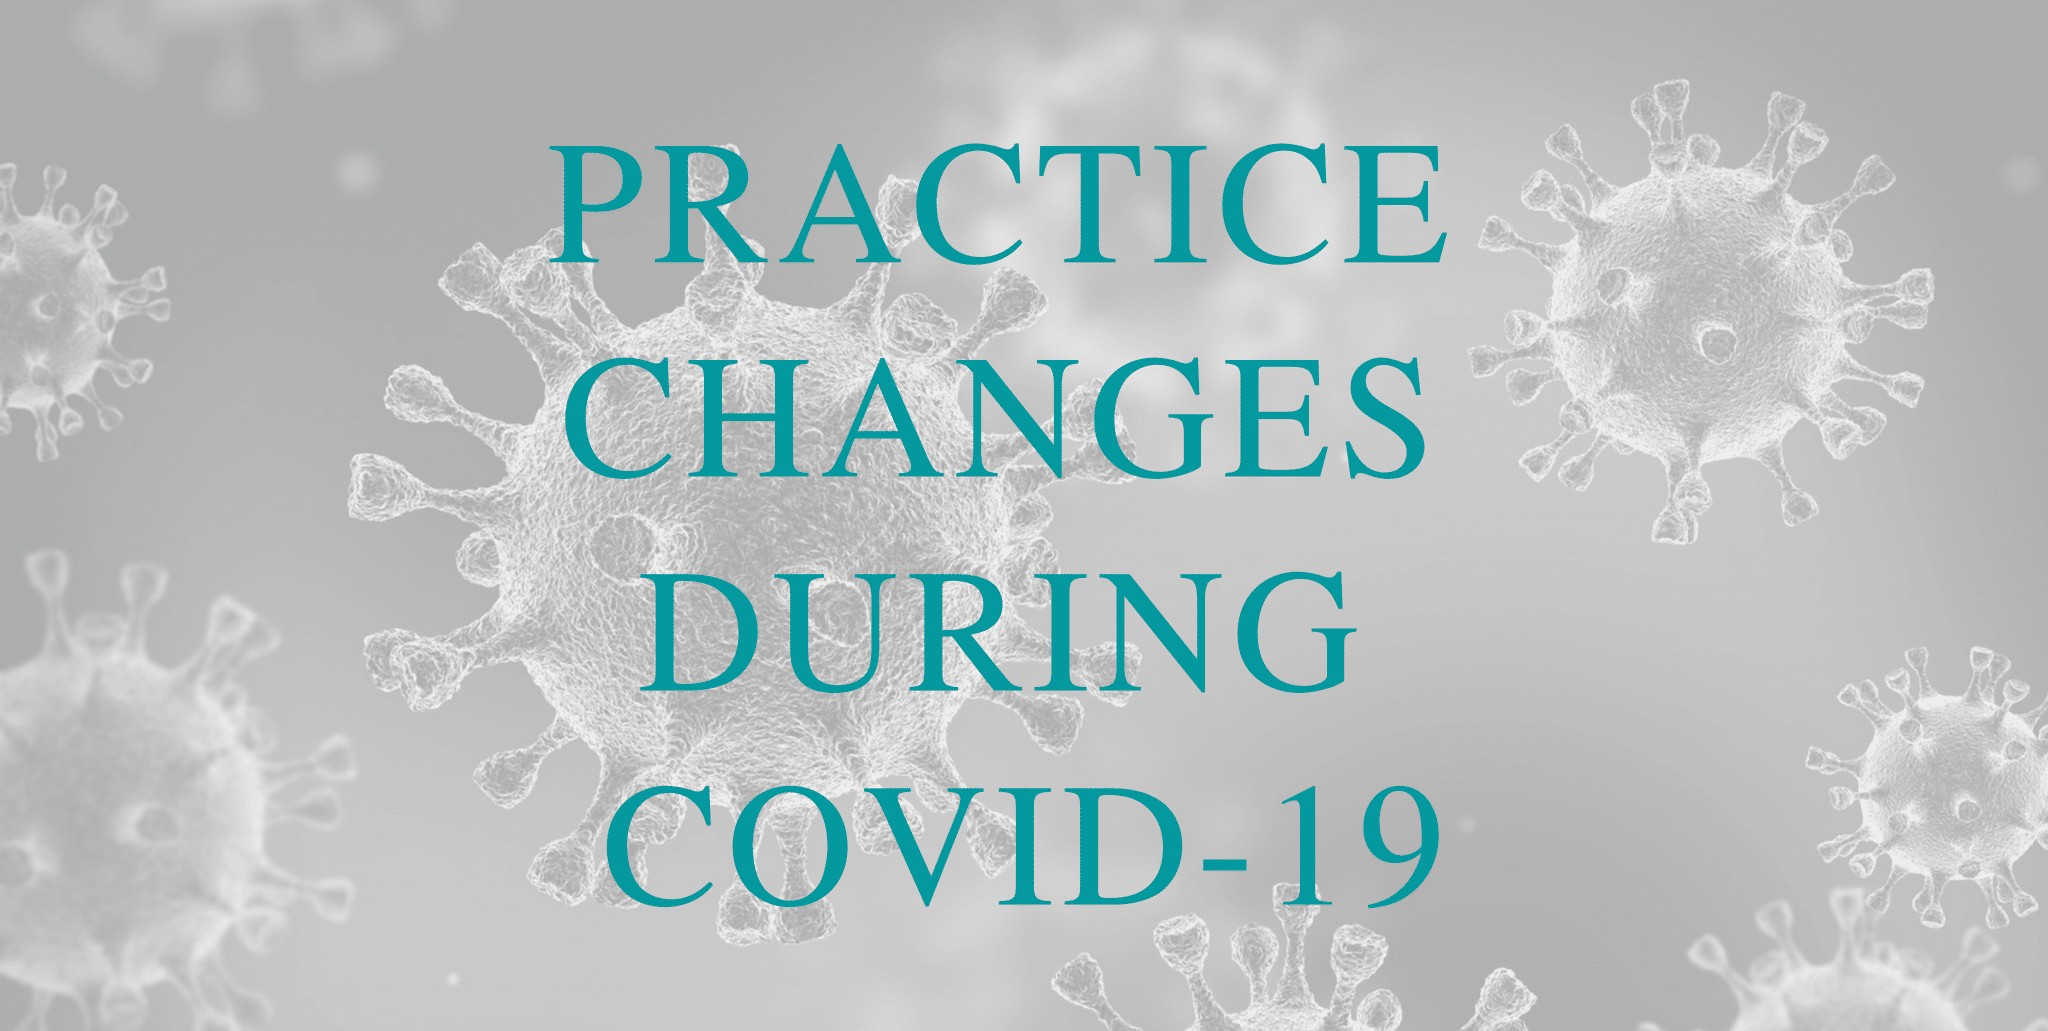 Practice Changes During COVID-19 Image